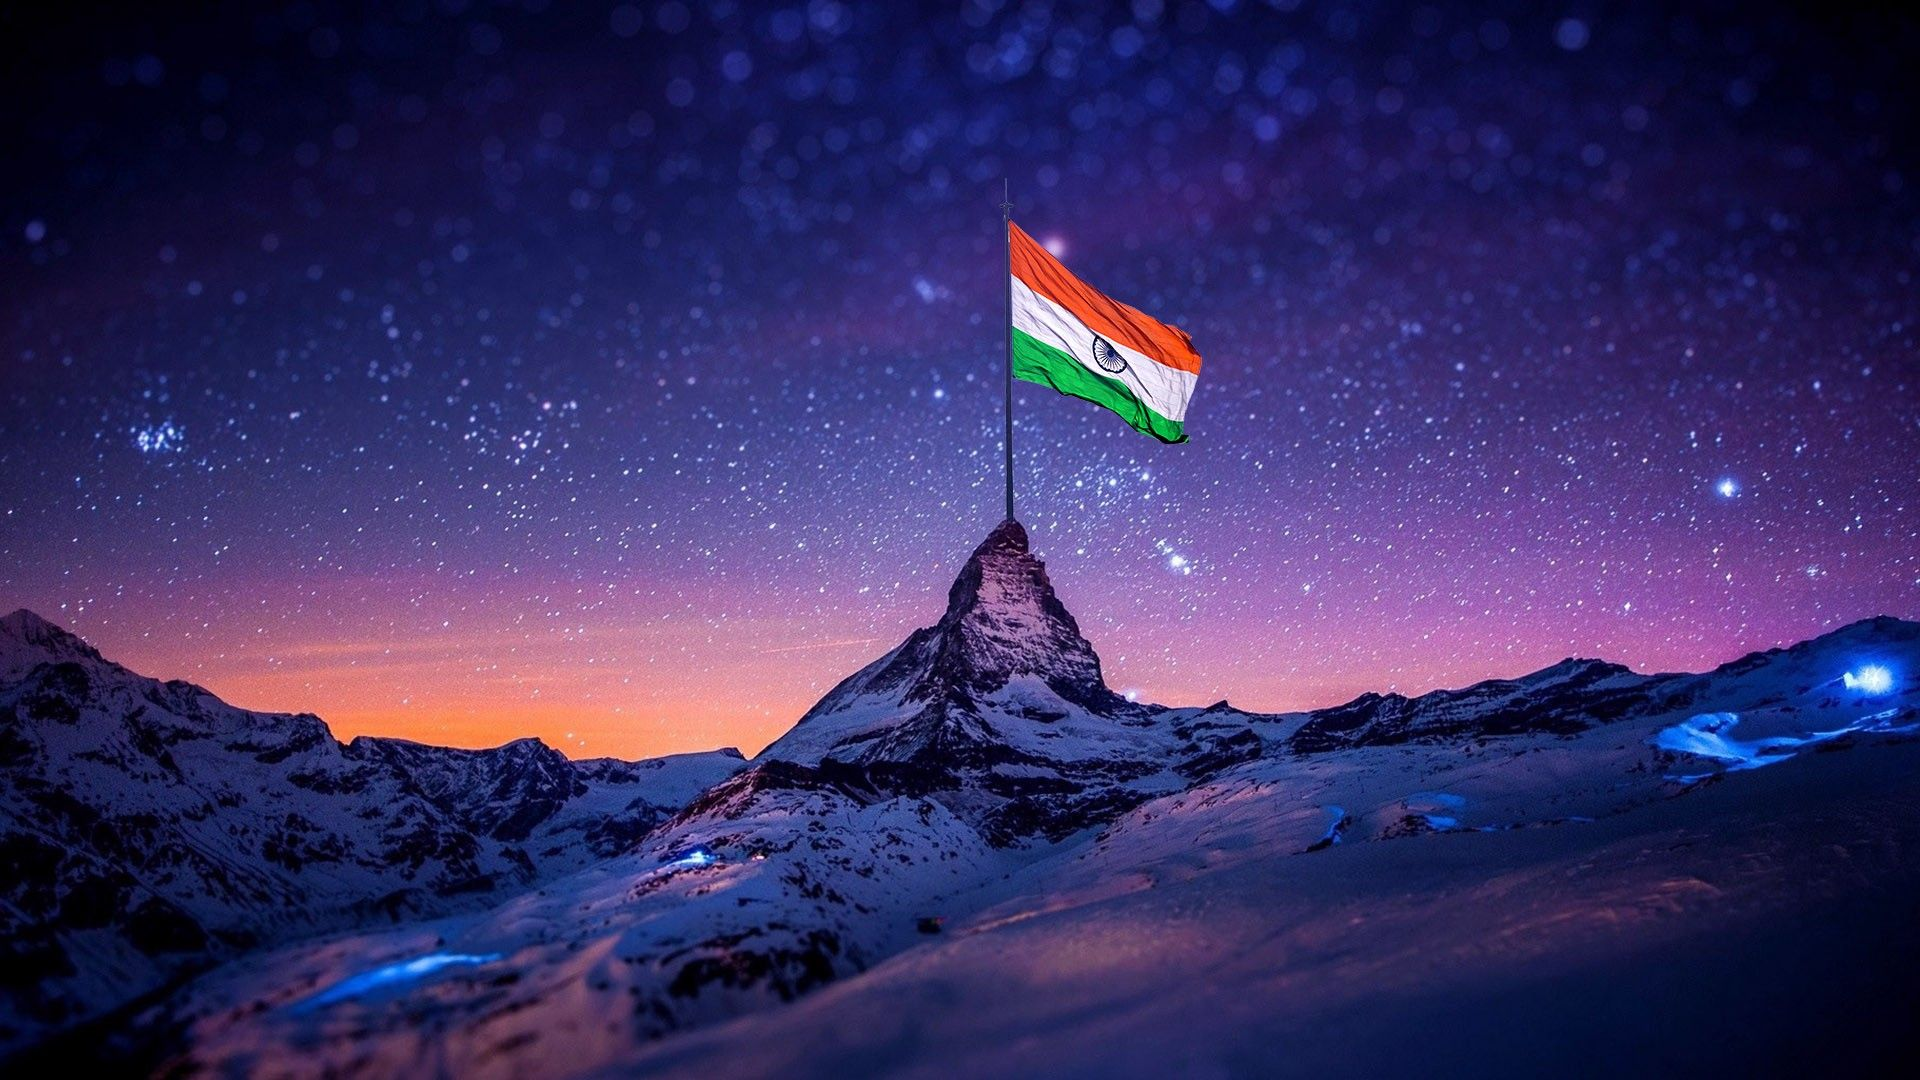 Indian Hd Wallpapers Top Free Indian Hd Backgrounds Wallpaperaccess